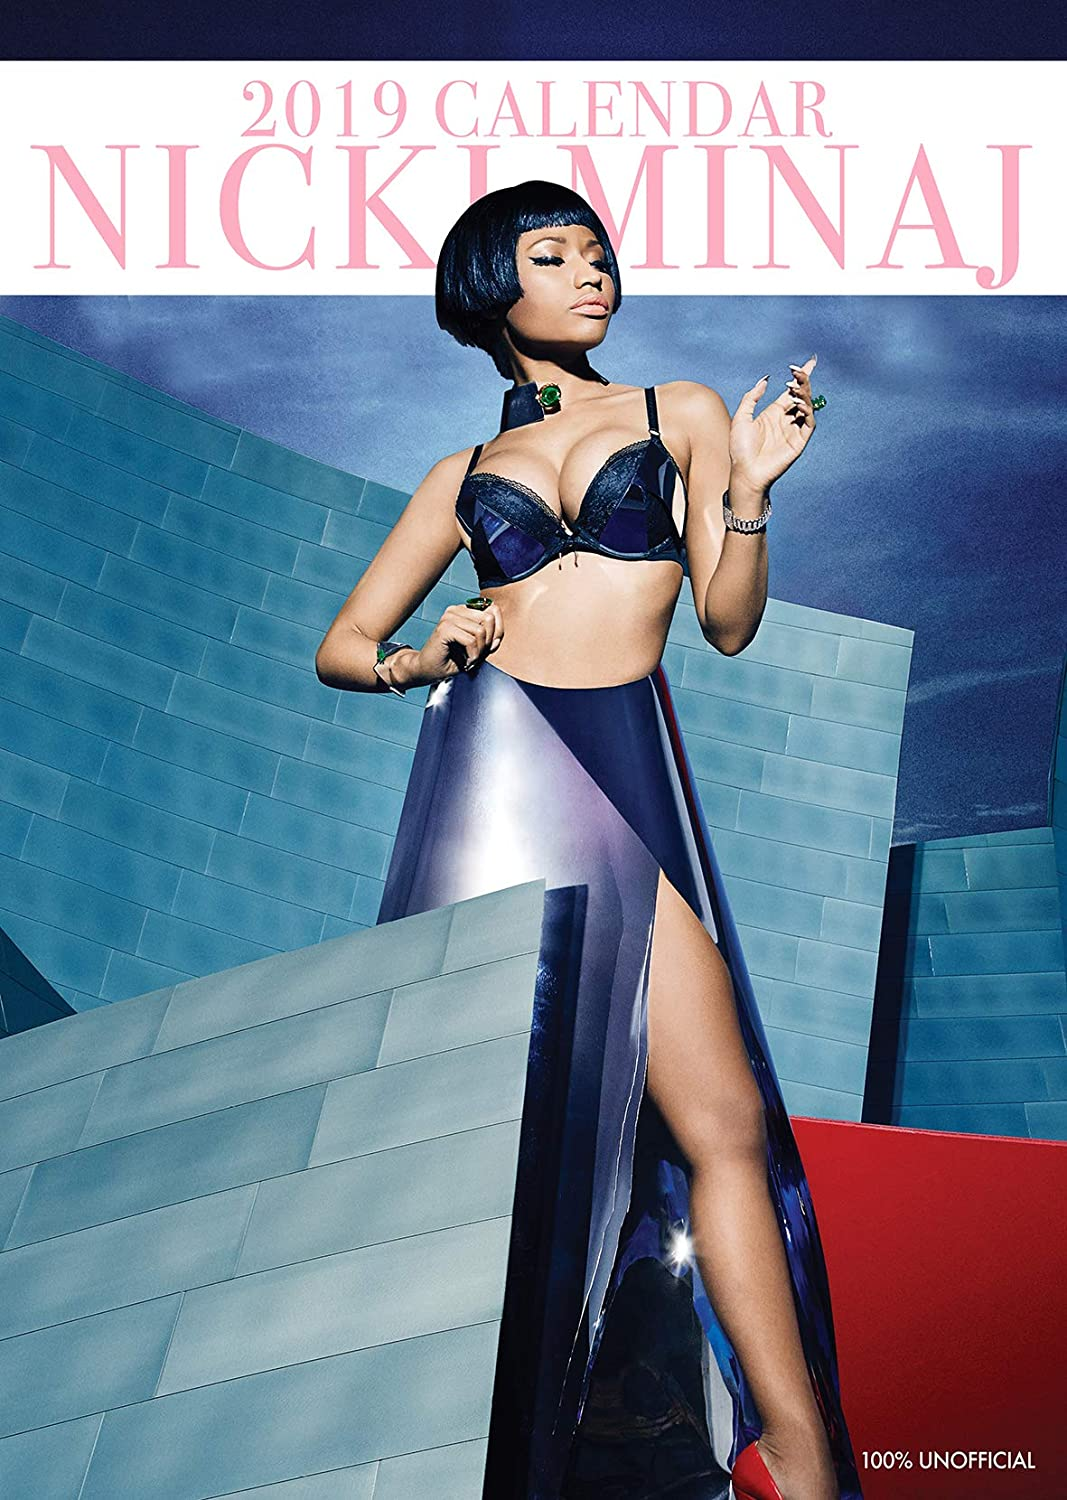 Nicki Minaj Calendar 2019 For Sale Nicki Minaj 2019 Calendar: Amazon.co.uk: Office Products